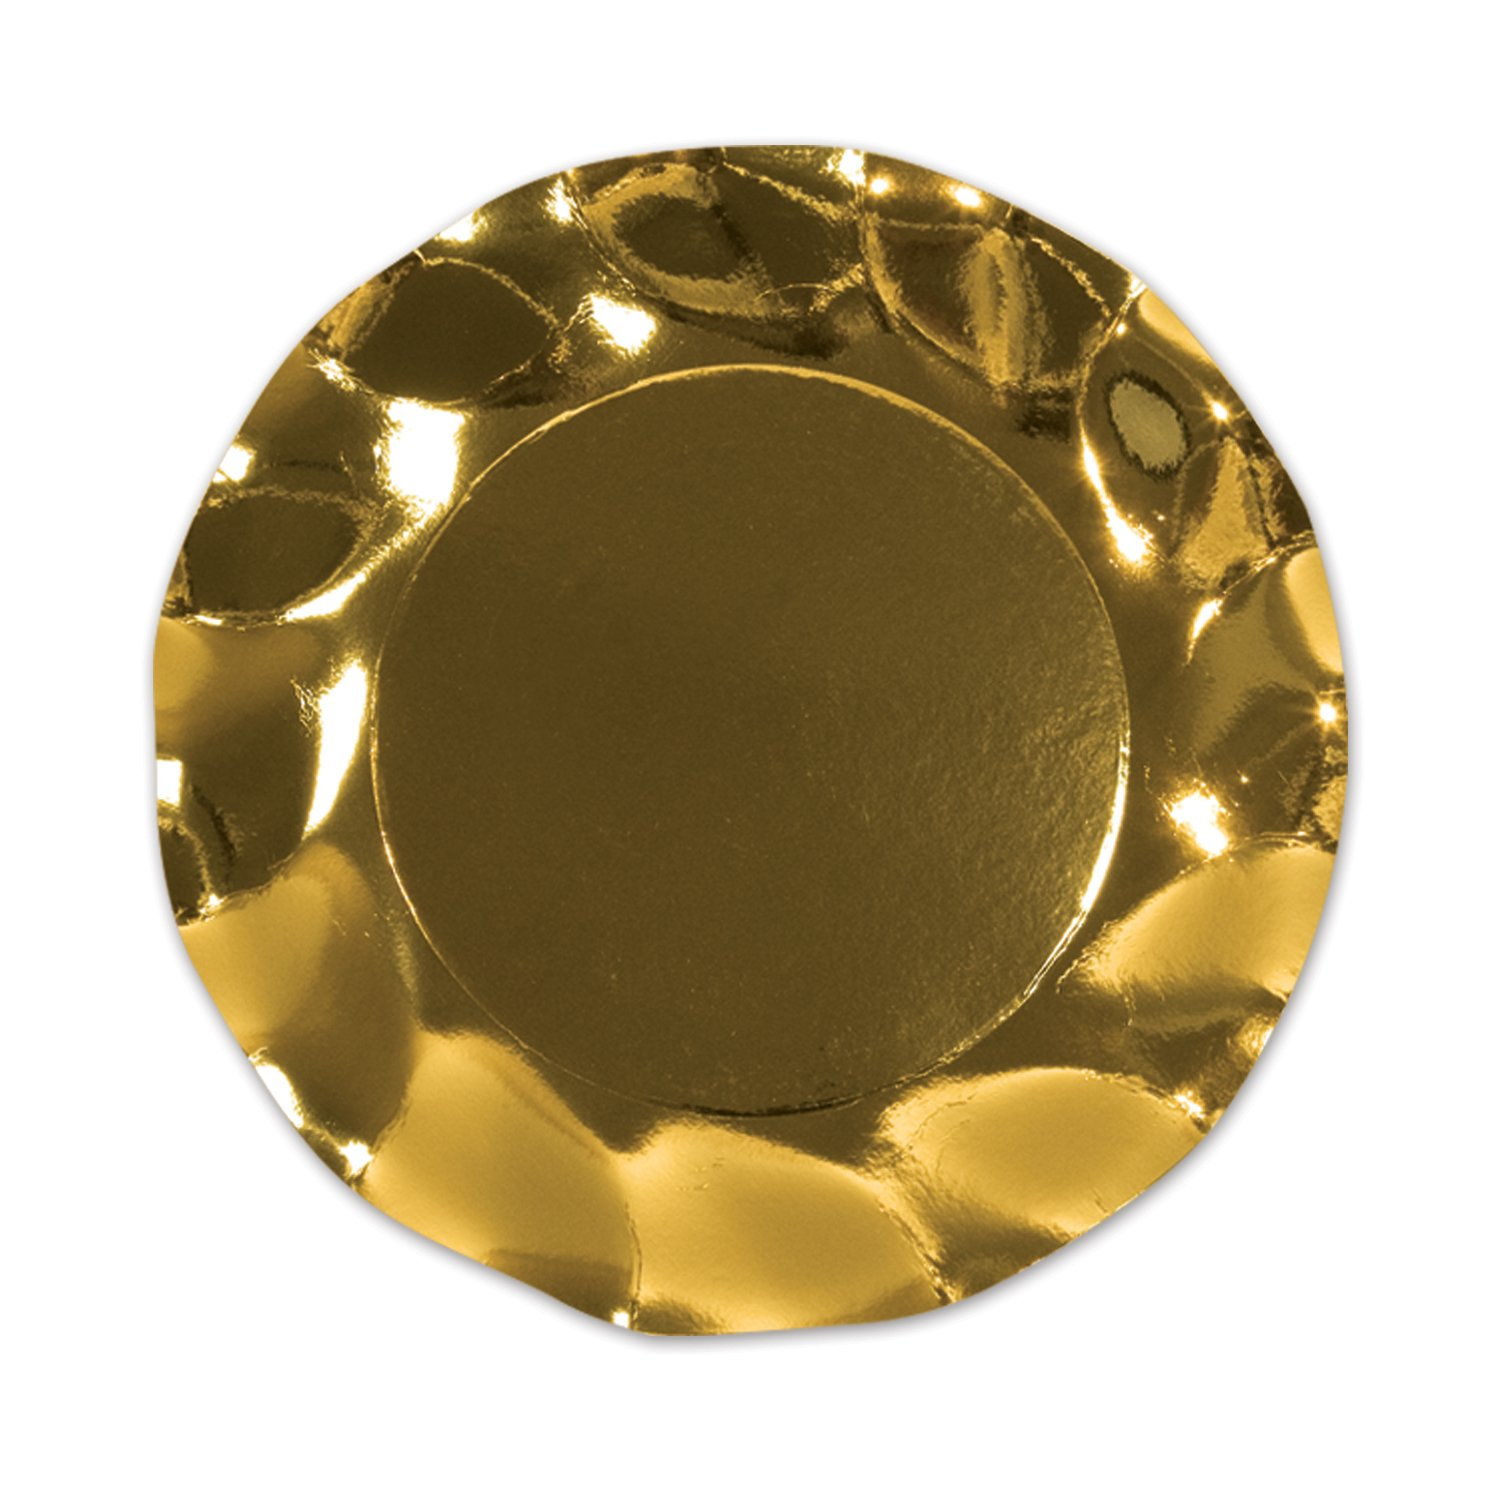 sc 1 st  Amazon.com & Amazon.com: Metallic Gold Plates (10/Pkg): Kitchen u0026 Dining